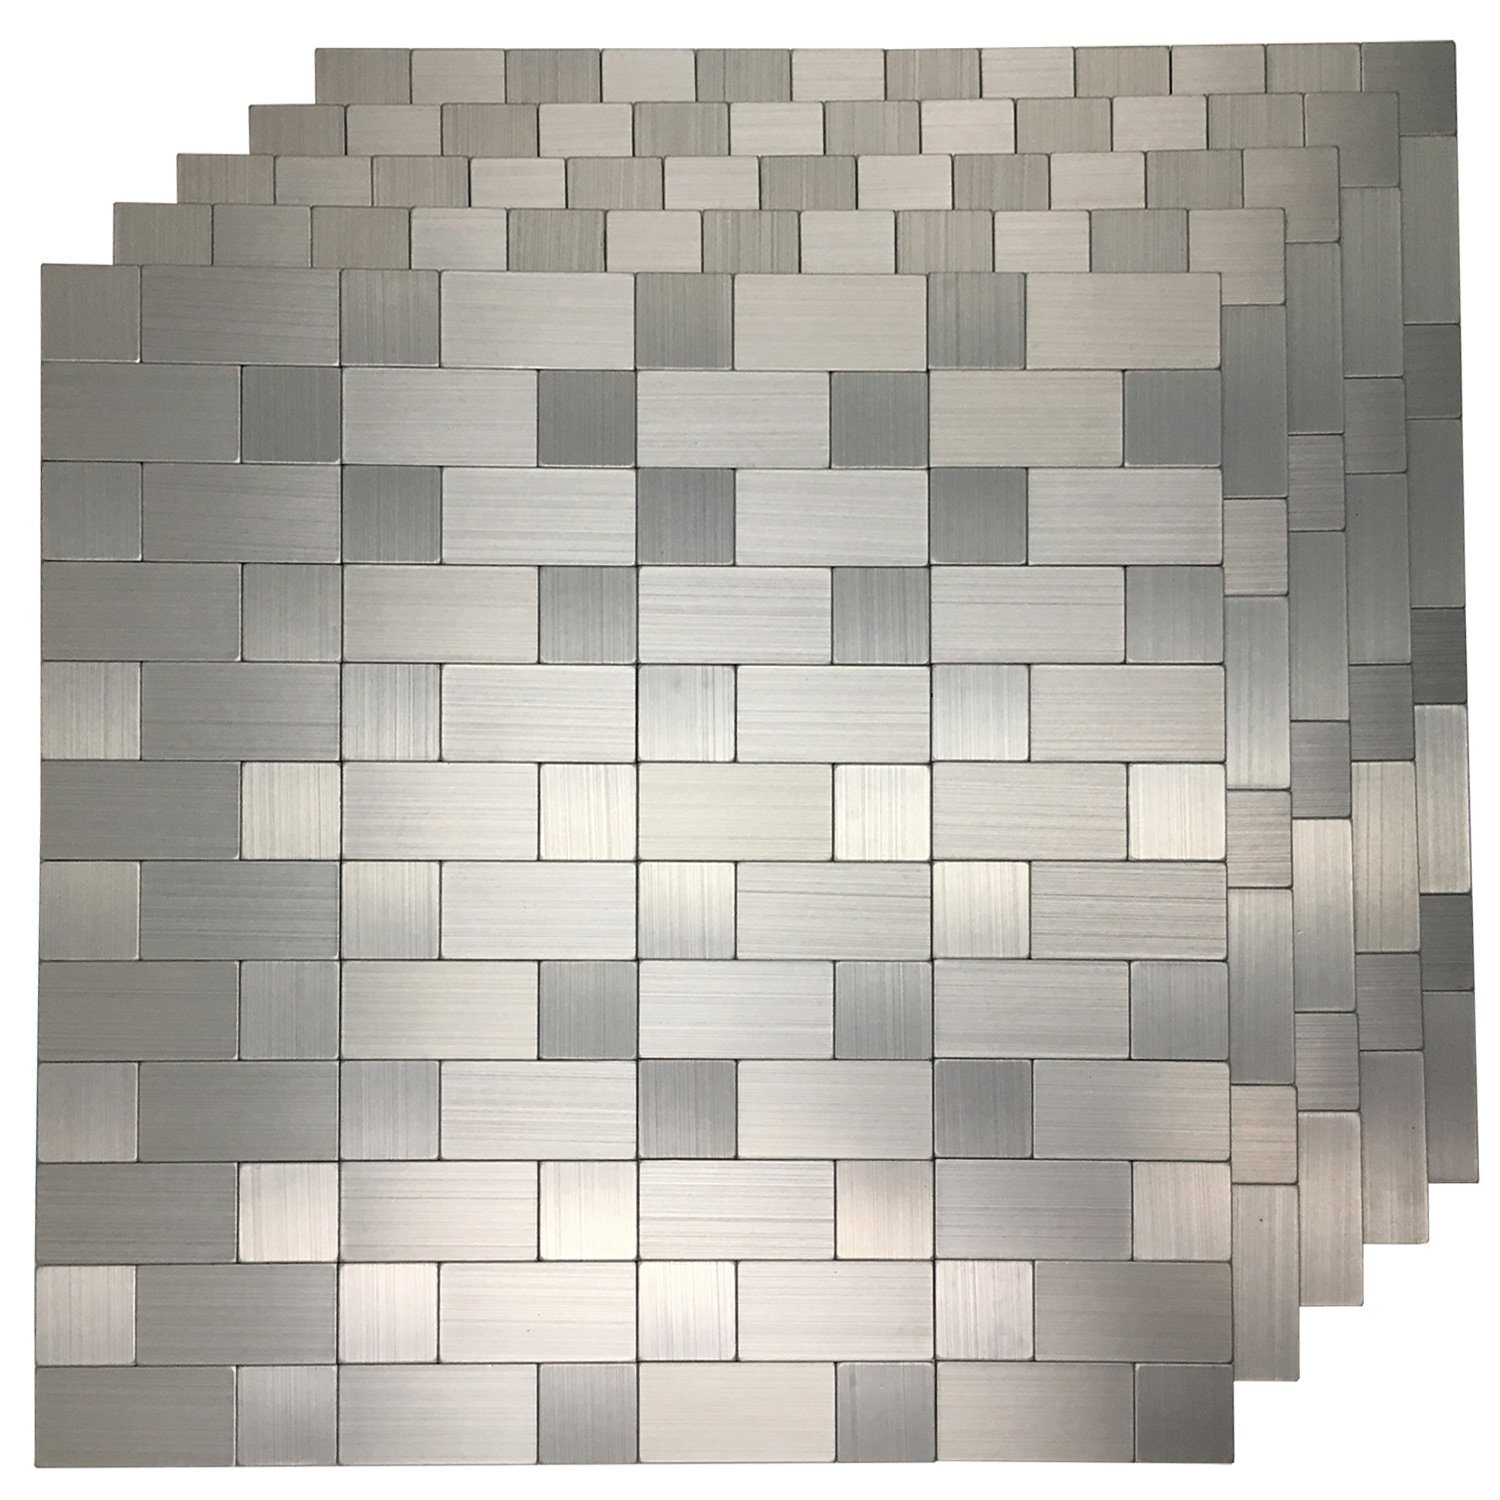 Art3d Peel and Stick Metal Backsplash Tile, 12 X 12 Champagne A16012P1